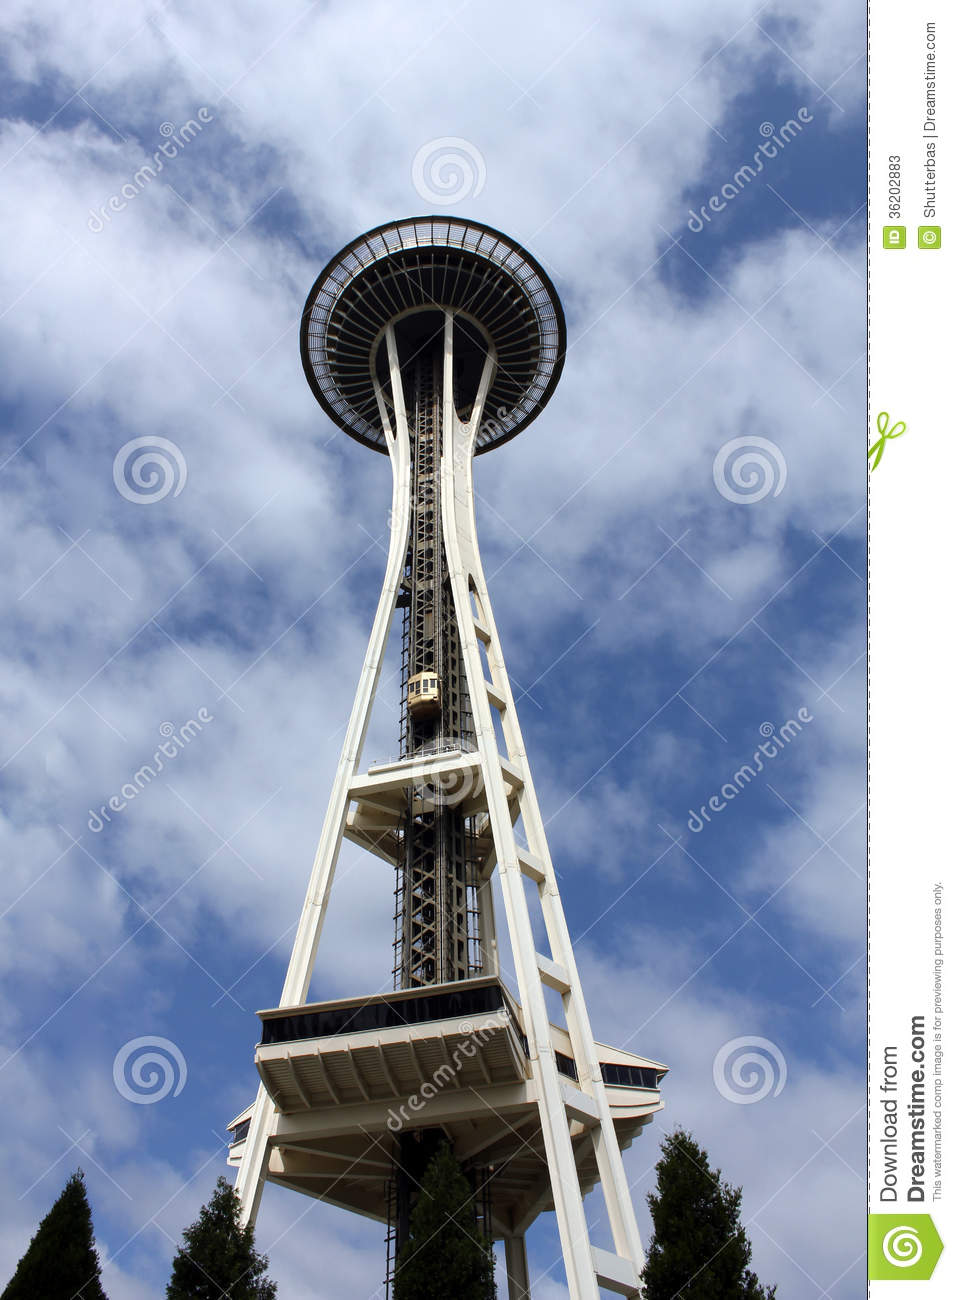 High Tower Stock Photos - Image: 36202883